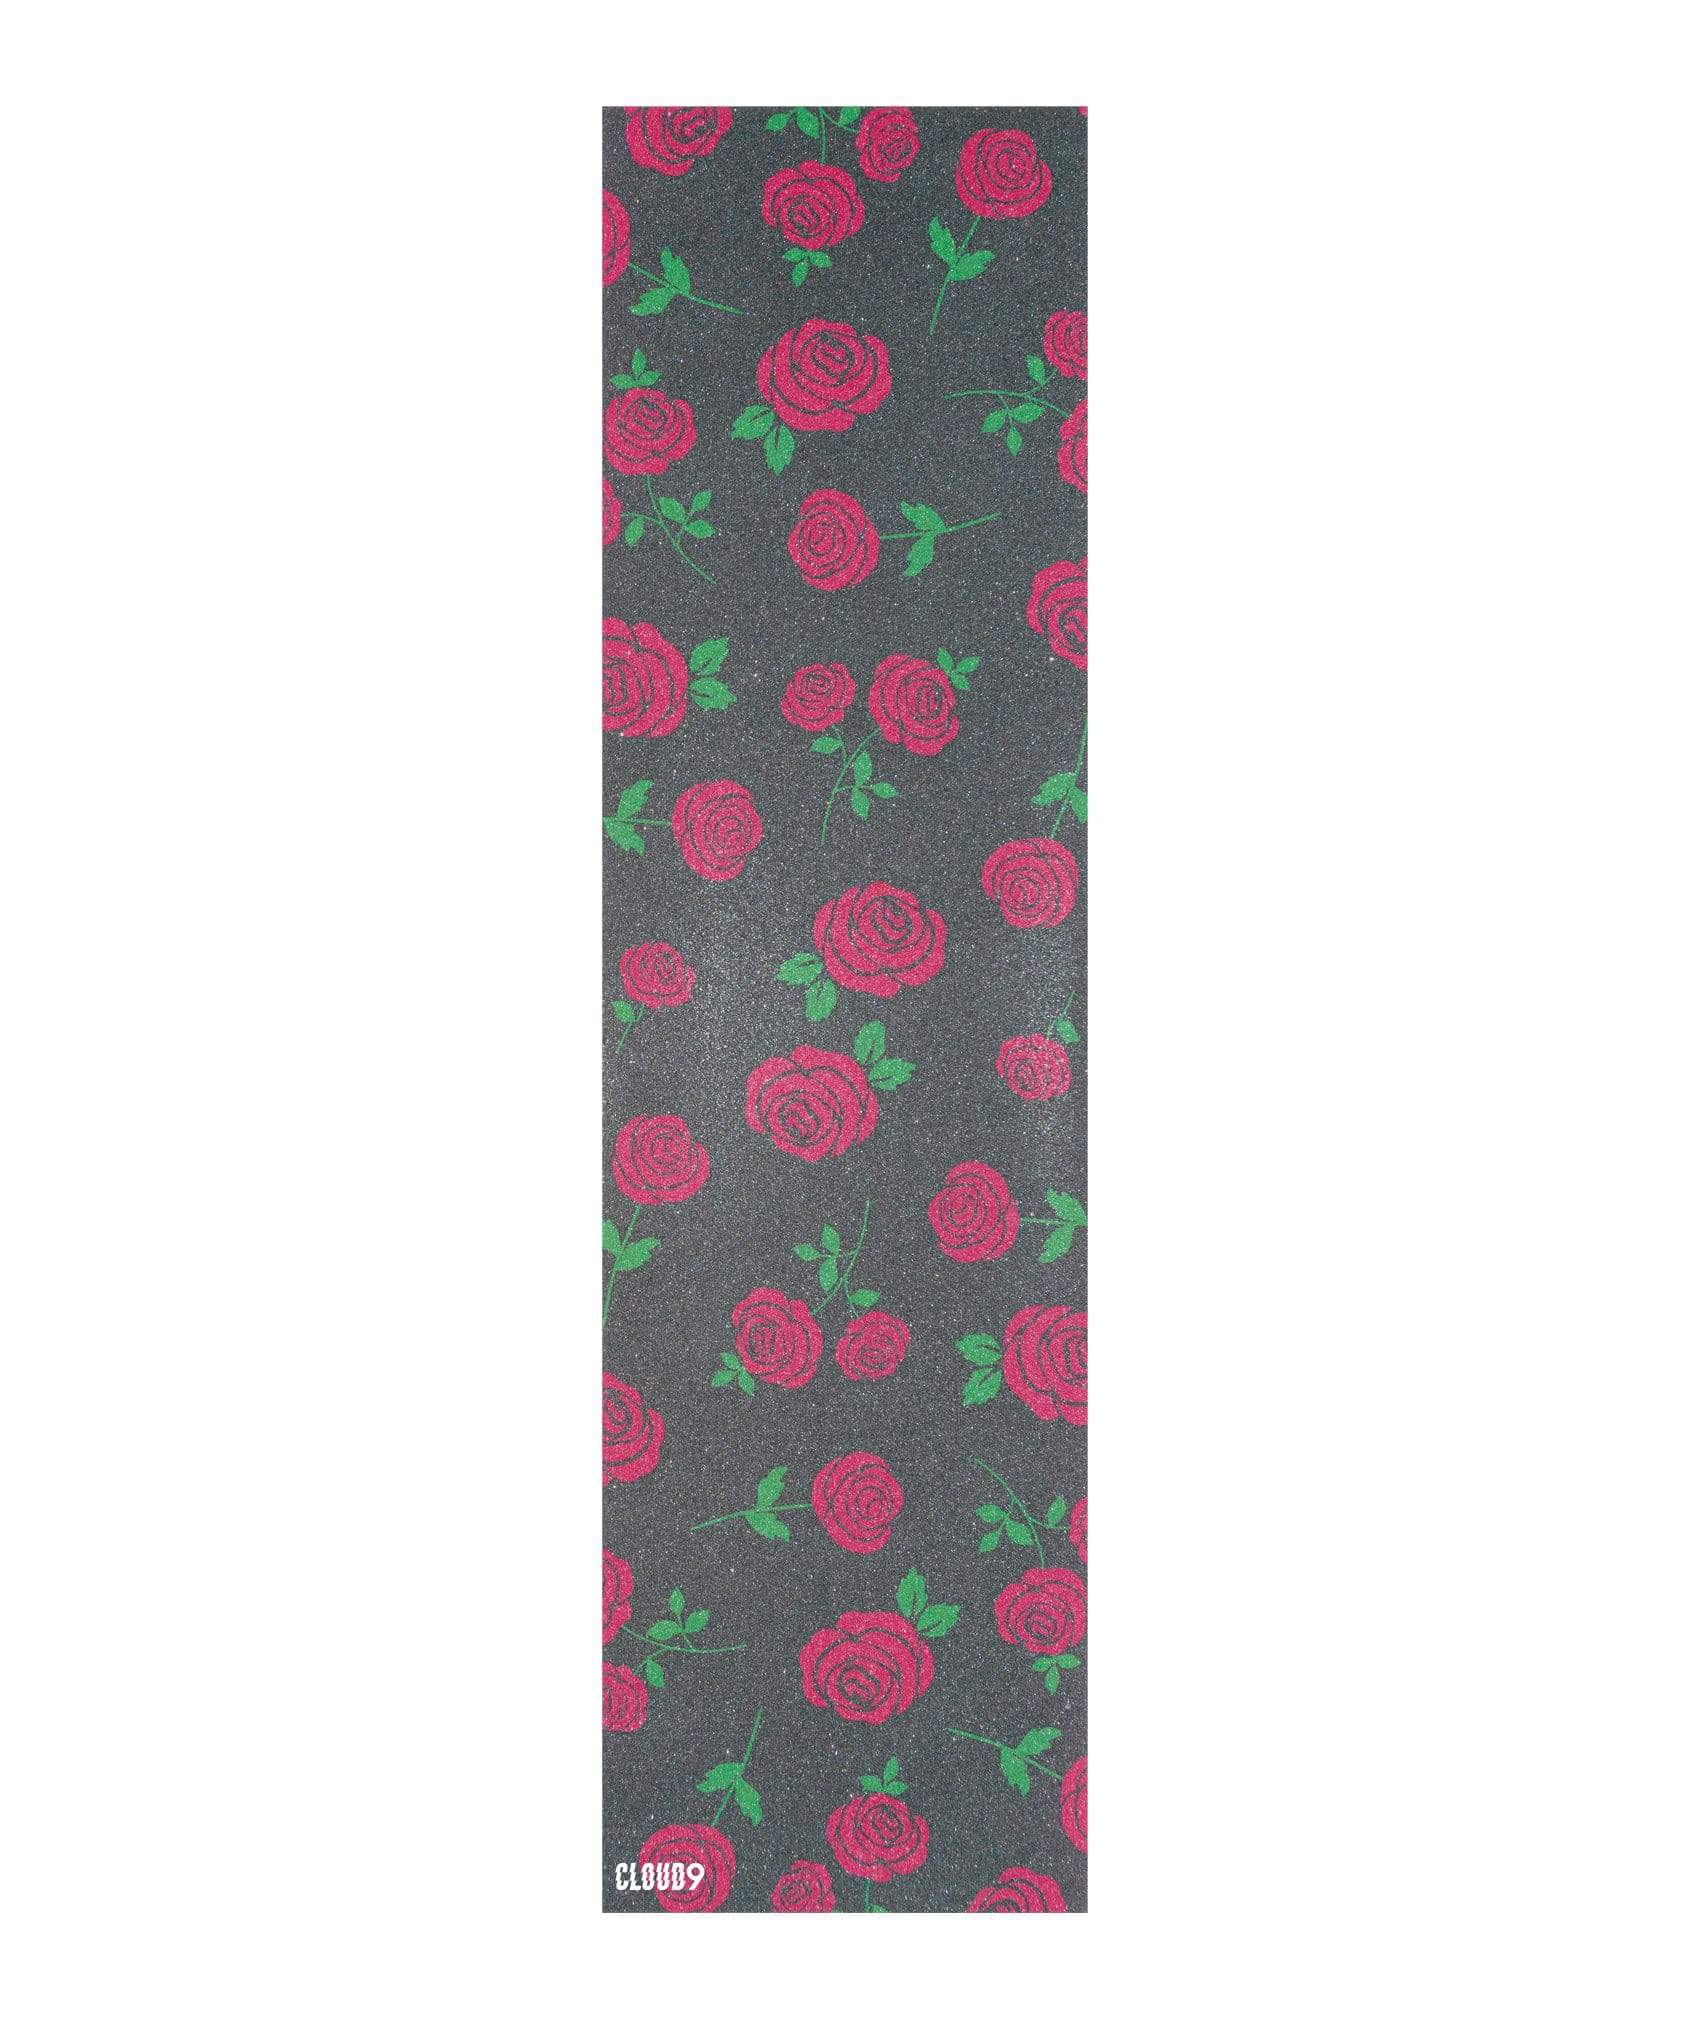 Cloud 9 Griptape Roses Skateboard Grip Tape - Front